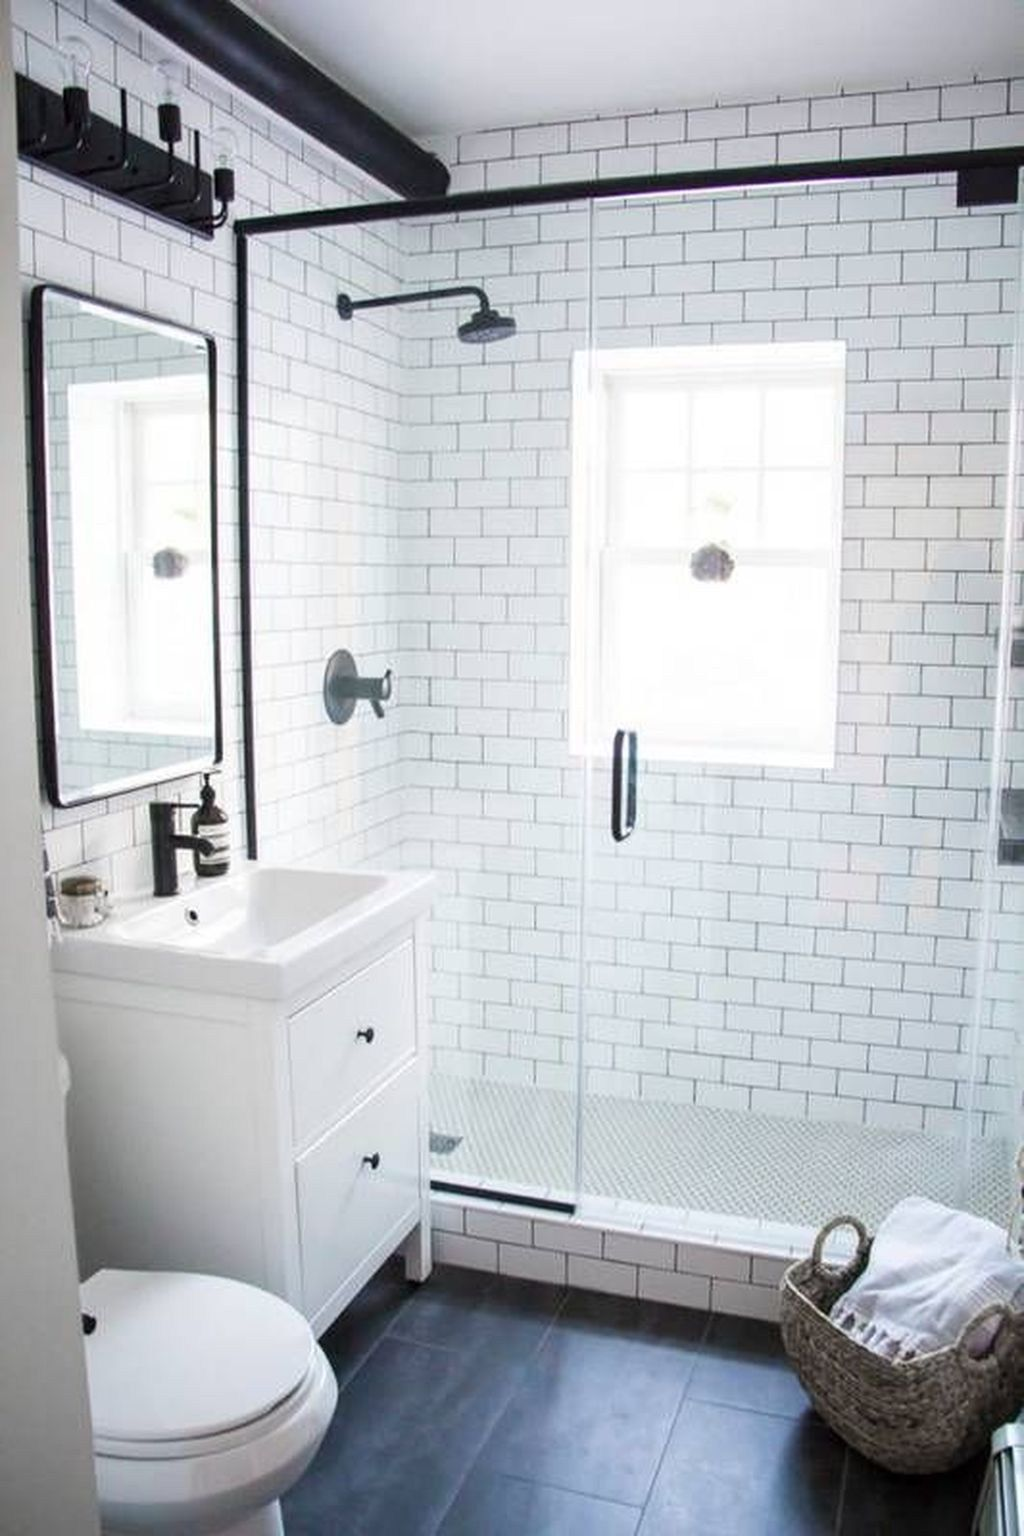 The Best Small Bathroom Remodel Ideas 12 Small Bathroom Small Master Bathroom Bathroom Remodel Master